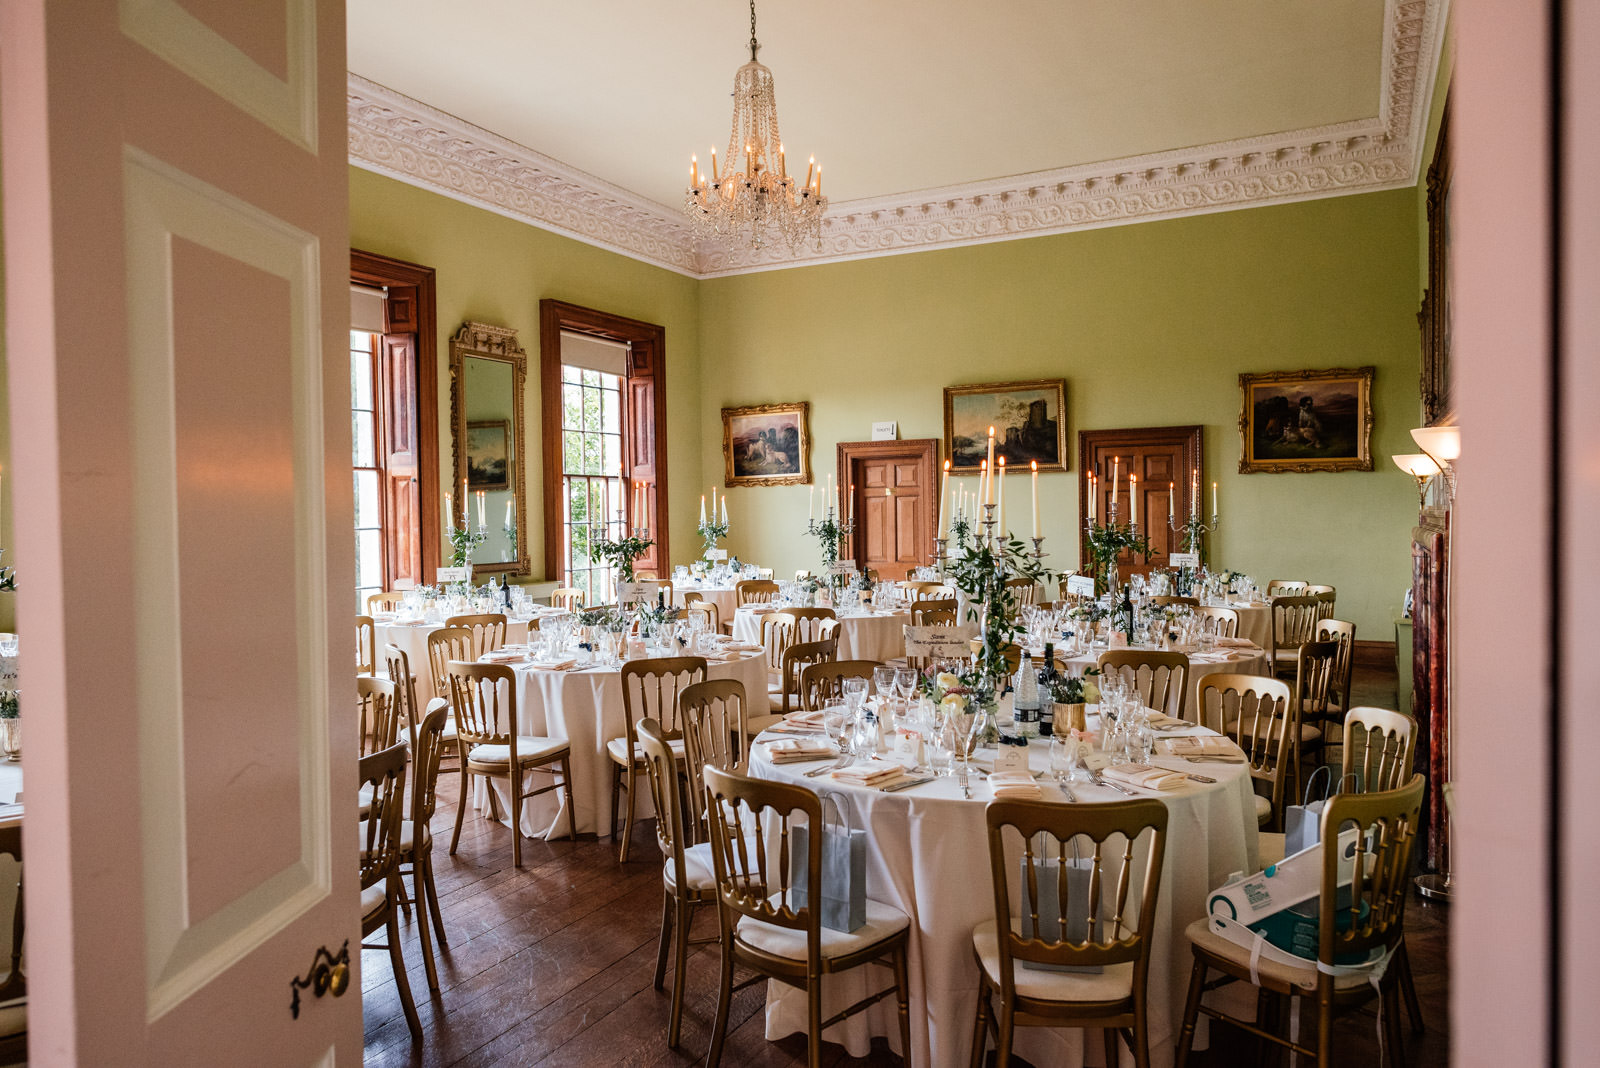 Kelmarsh hall wedding breakfast room